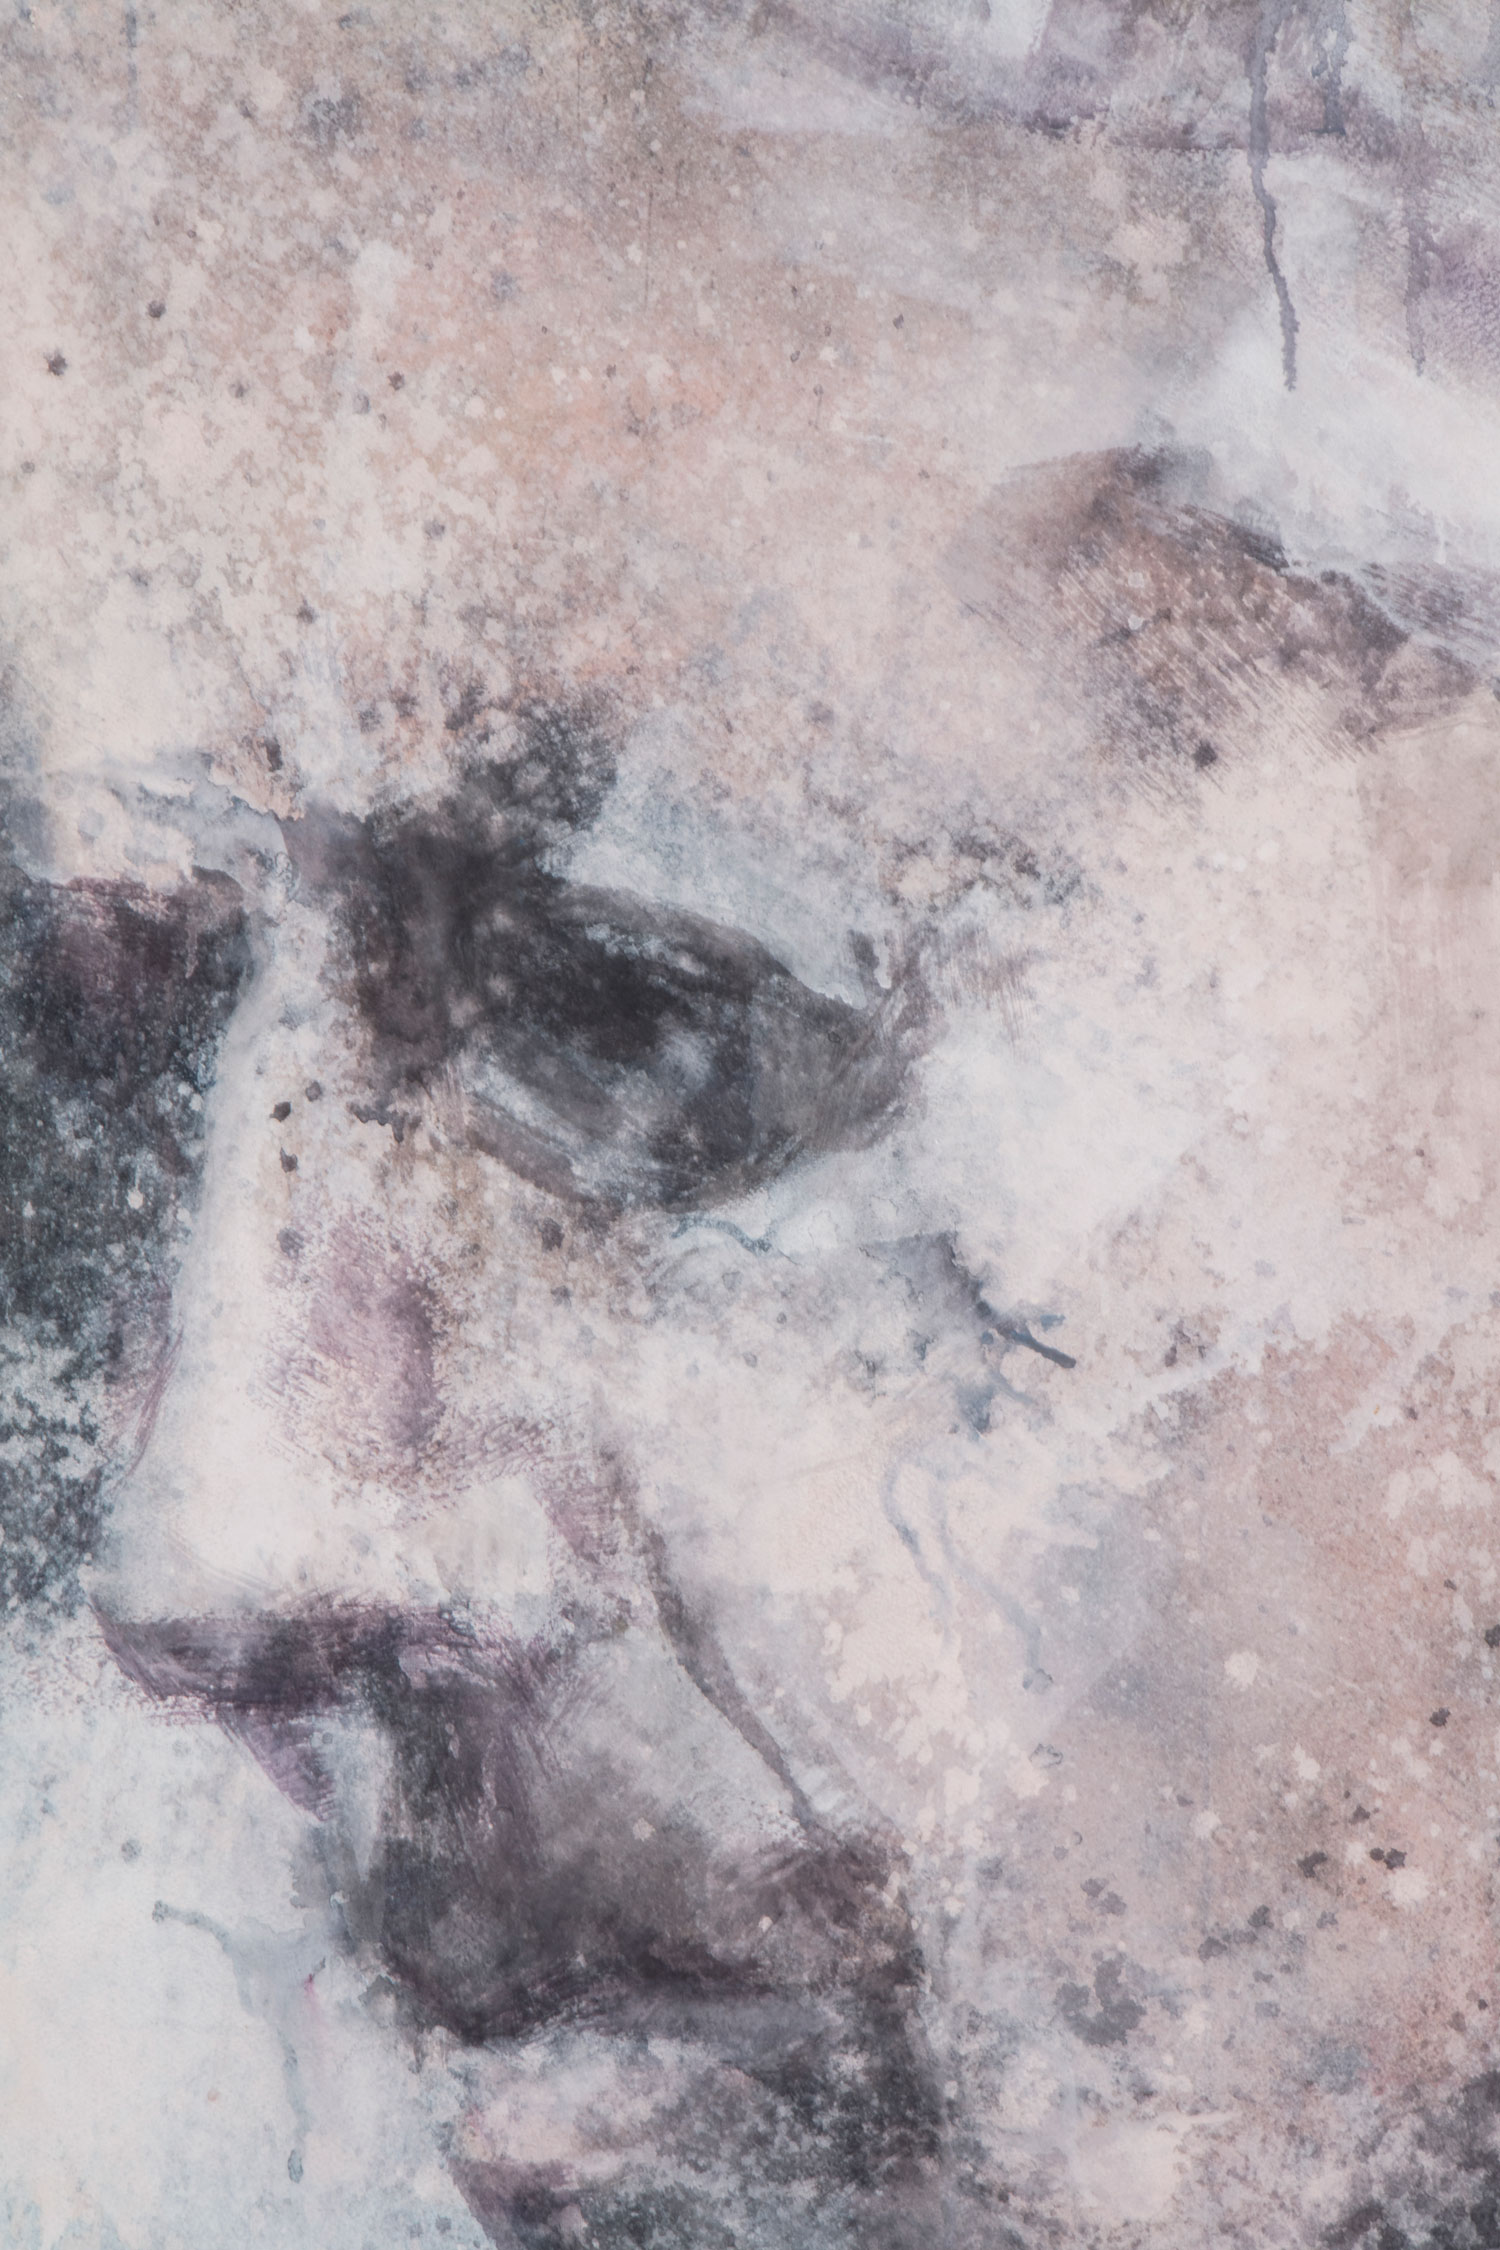 Self-portrait IV - detail